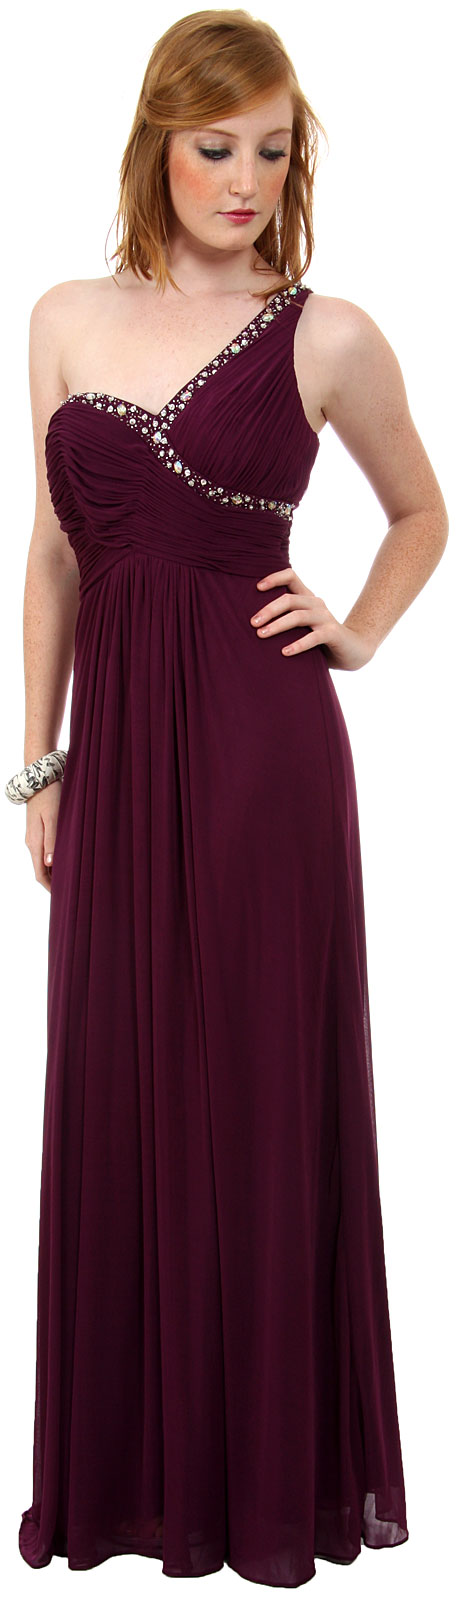 Main image of Greco Roman Formal Prom Dress With Bead Accents